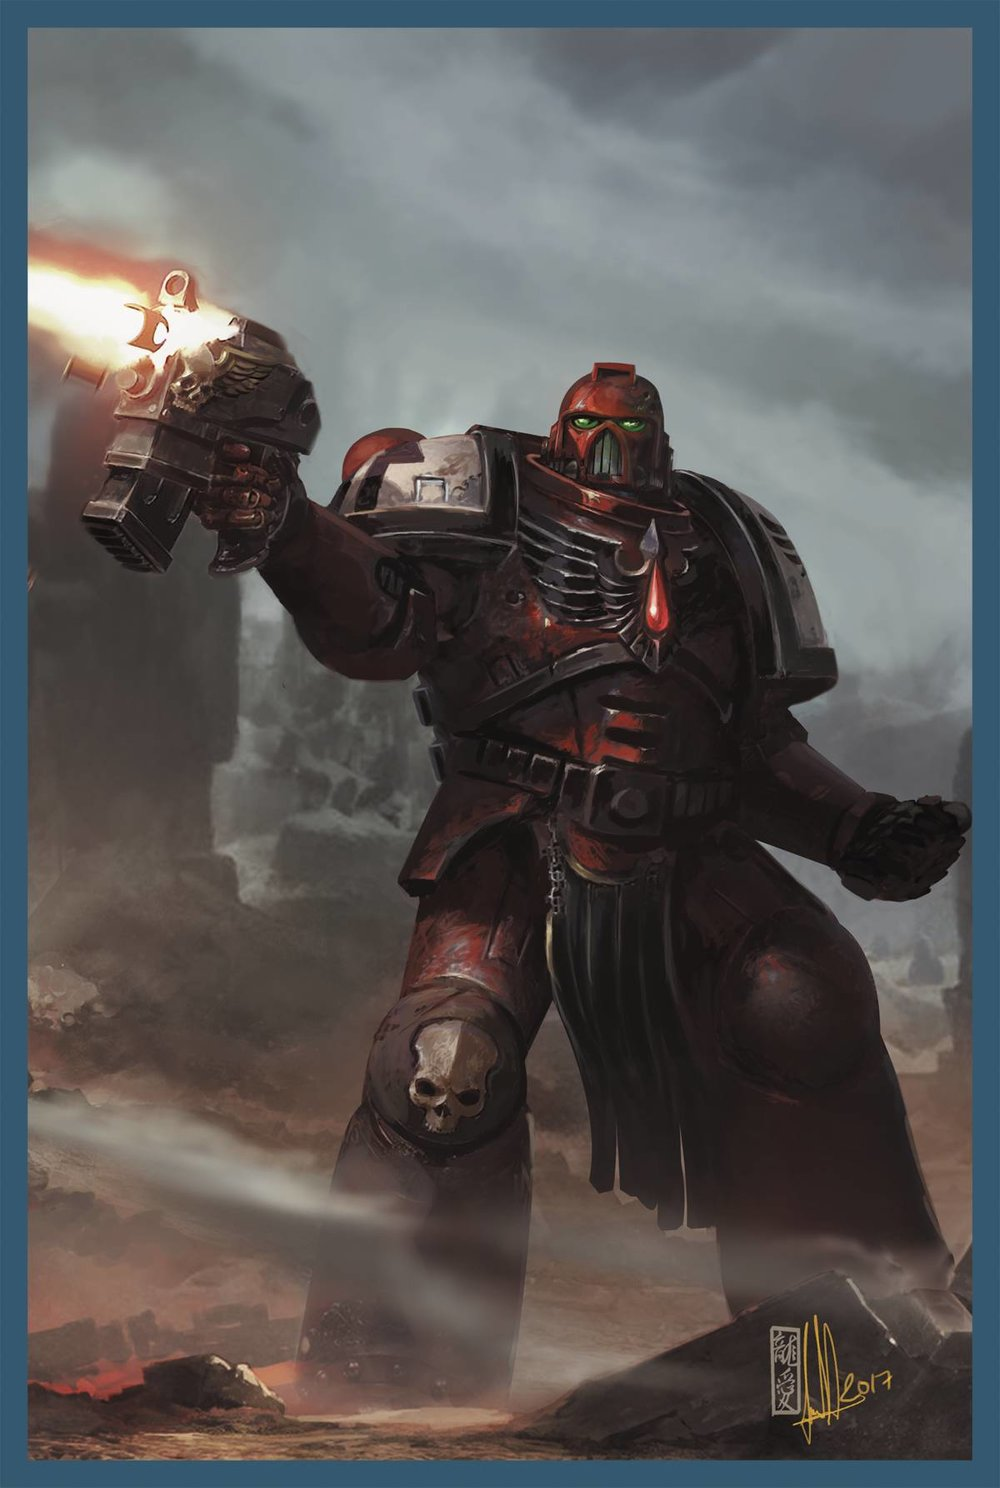 WARHAMMER DAWN OF WAR 4 of 4 CVR A SONDERED.jpg